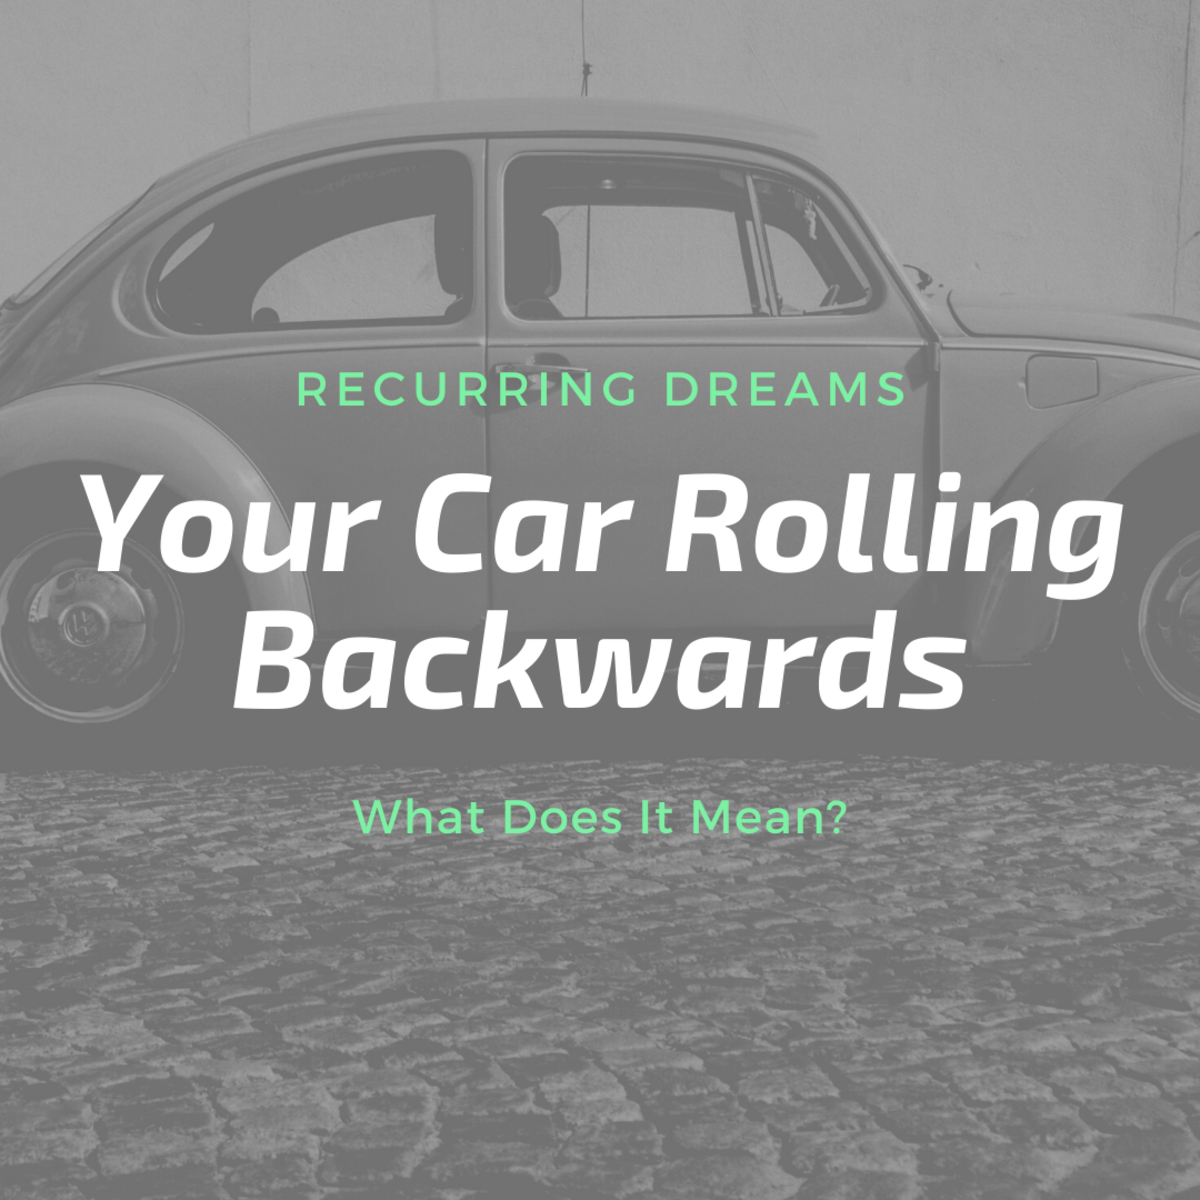 Find out what it could mean if you have this recurring dream!